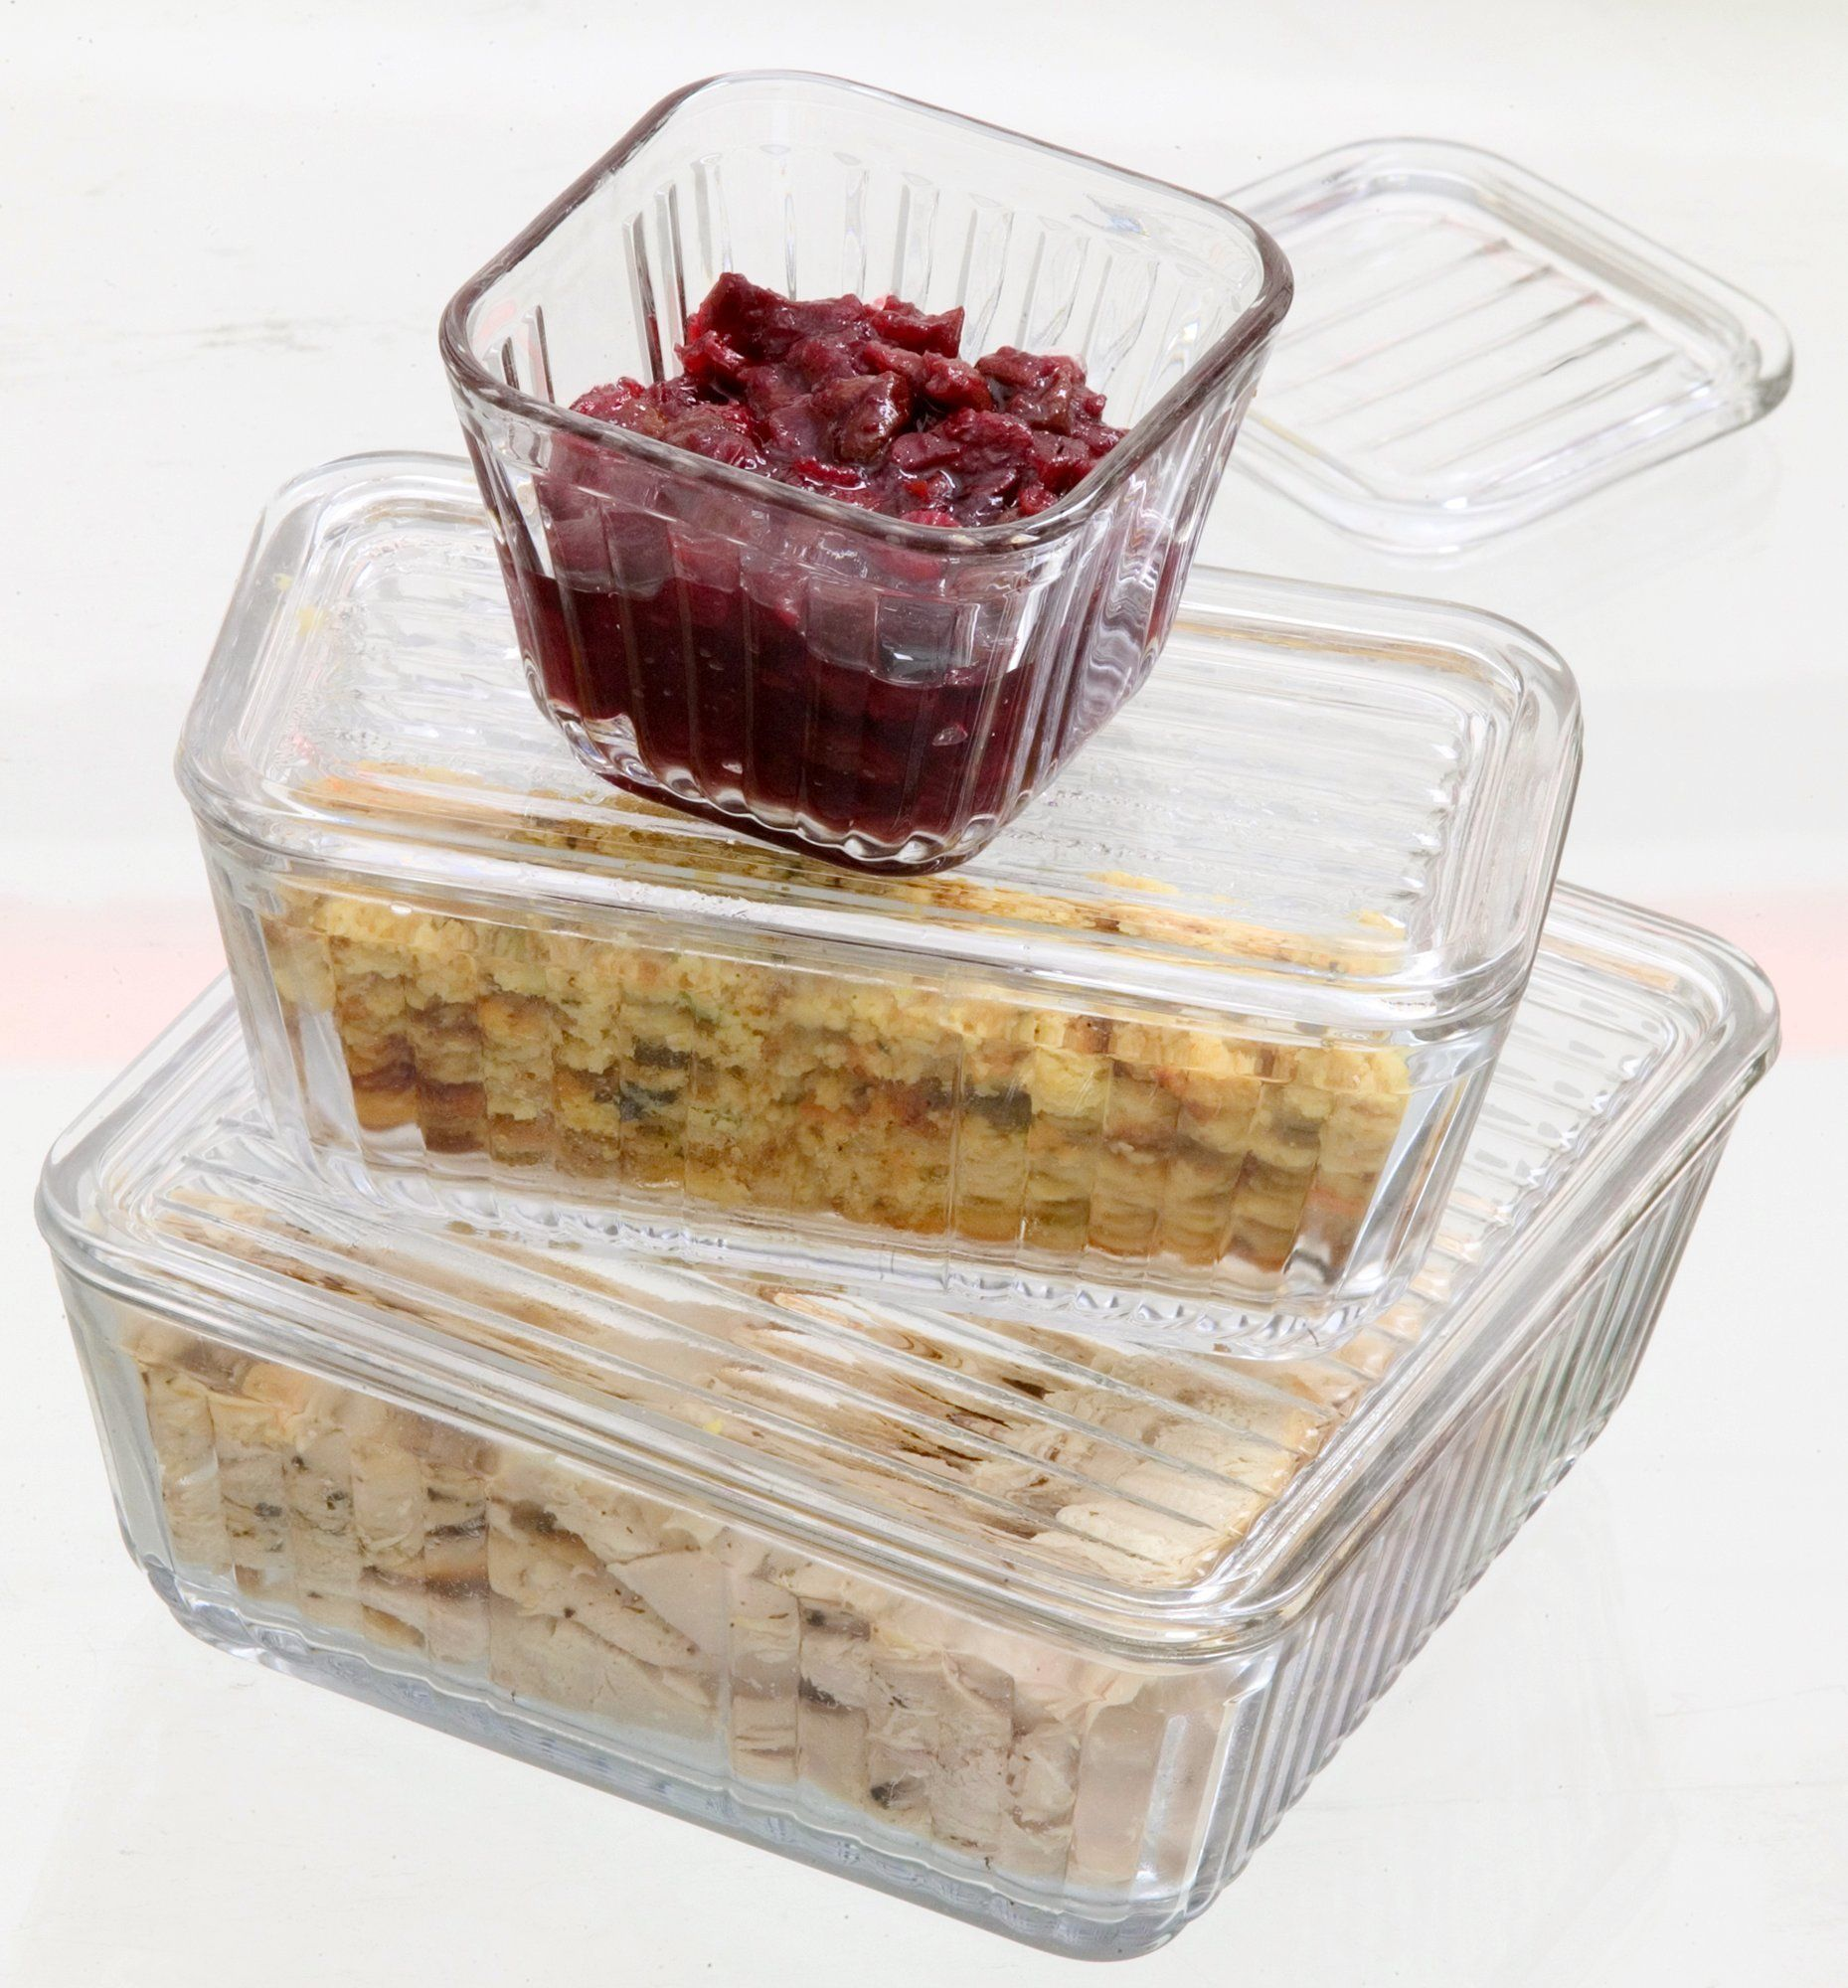 Clear glass containers help you keep an eye on turkey day leftovers while they're hanging out in the refrigerator. (lj) 2005